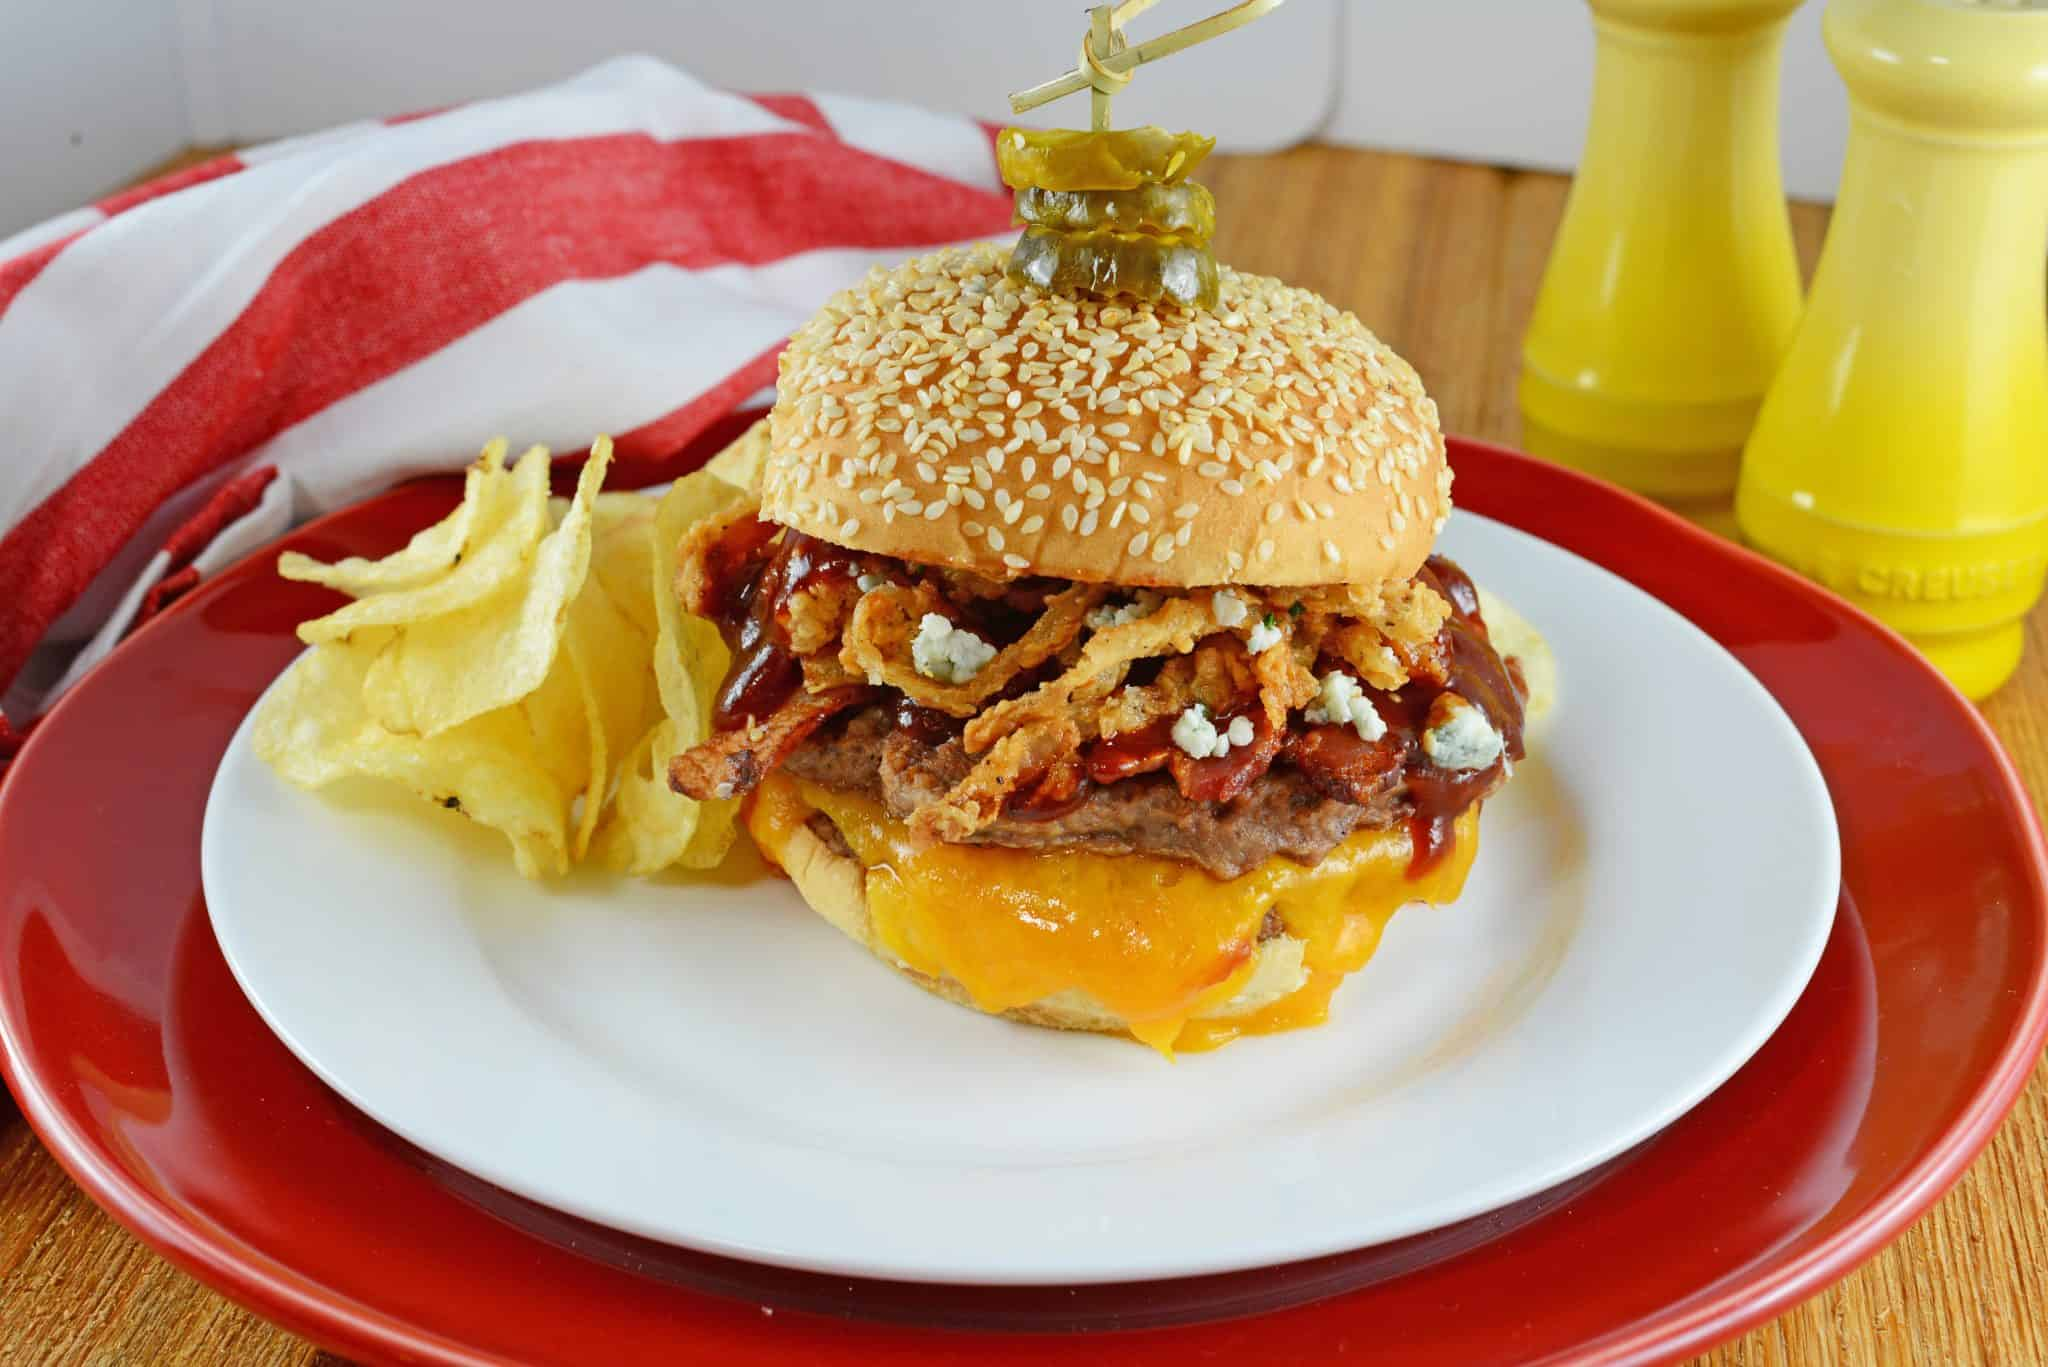 Cowboy burger with chips on a white plate